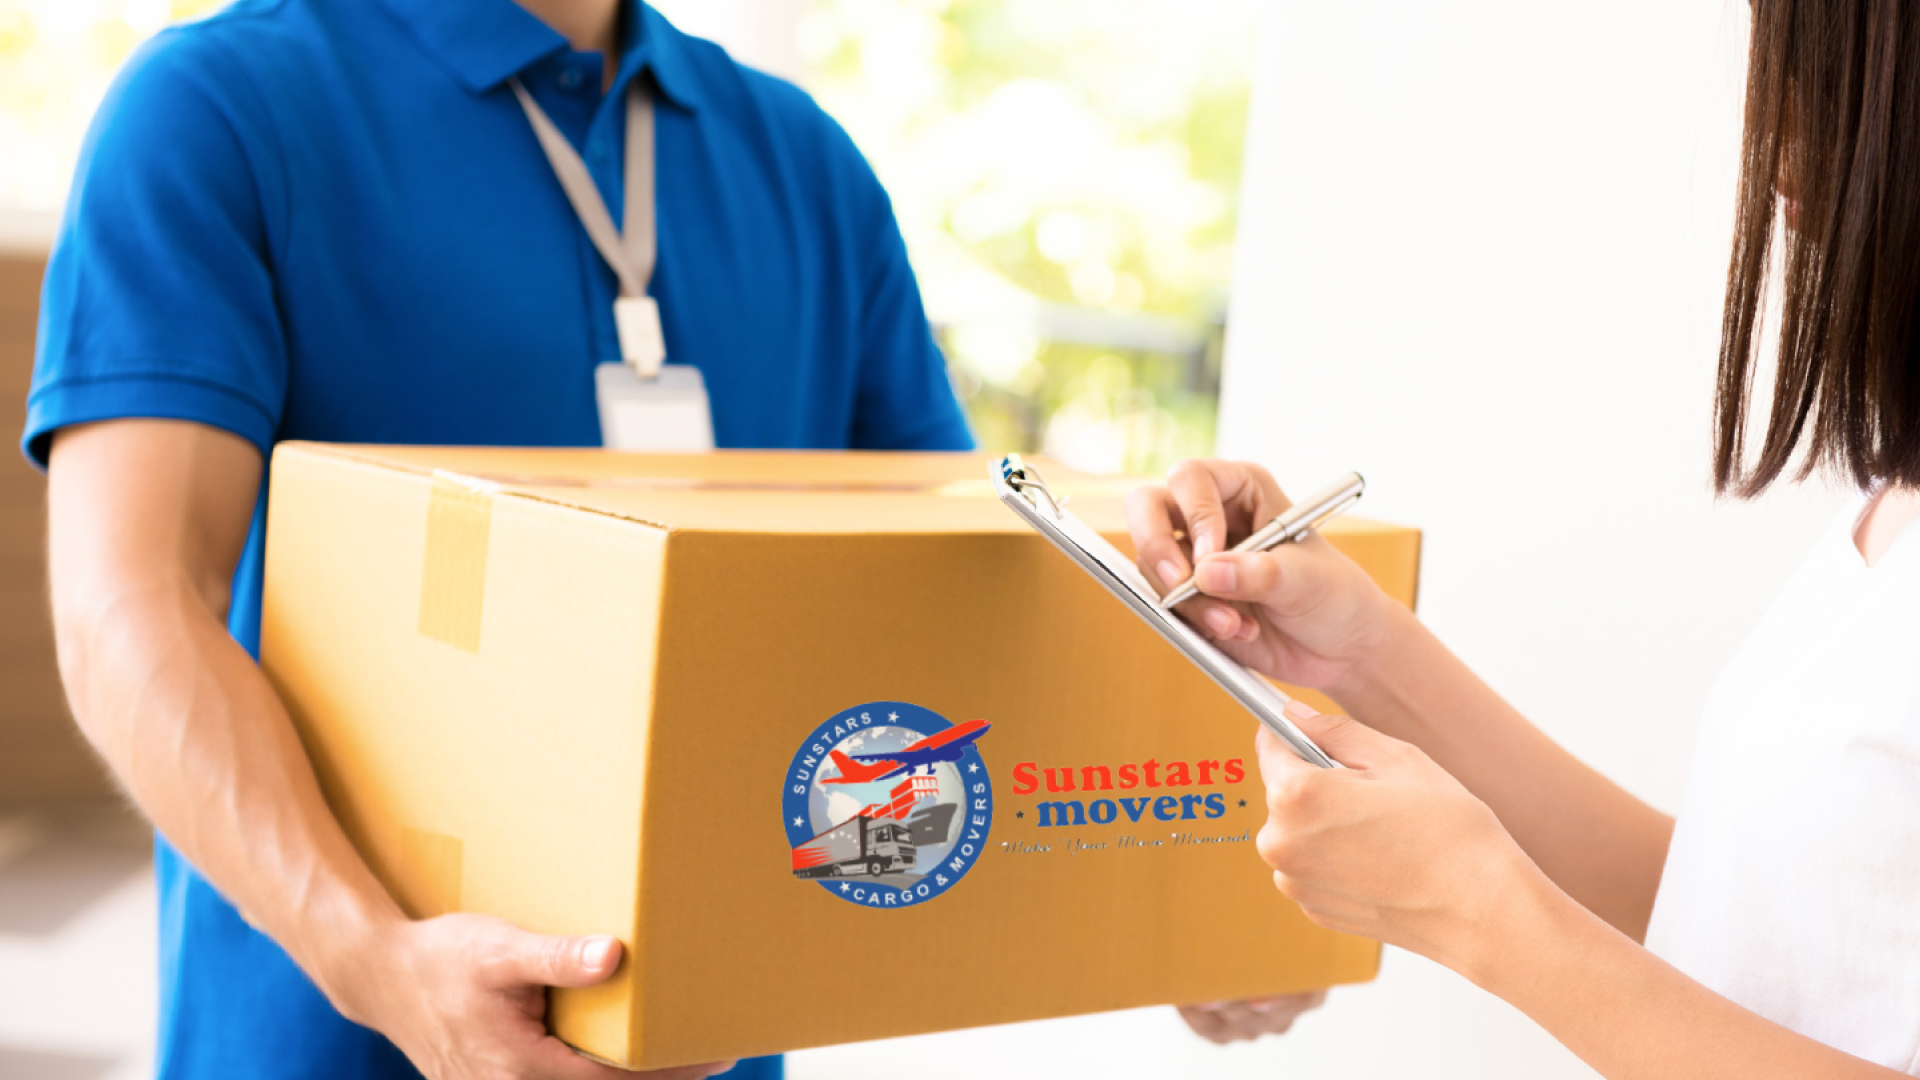 Home movers and packers in Dubai